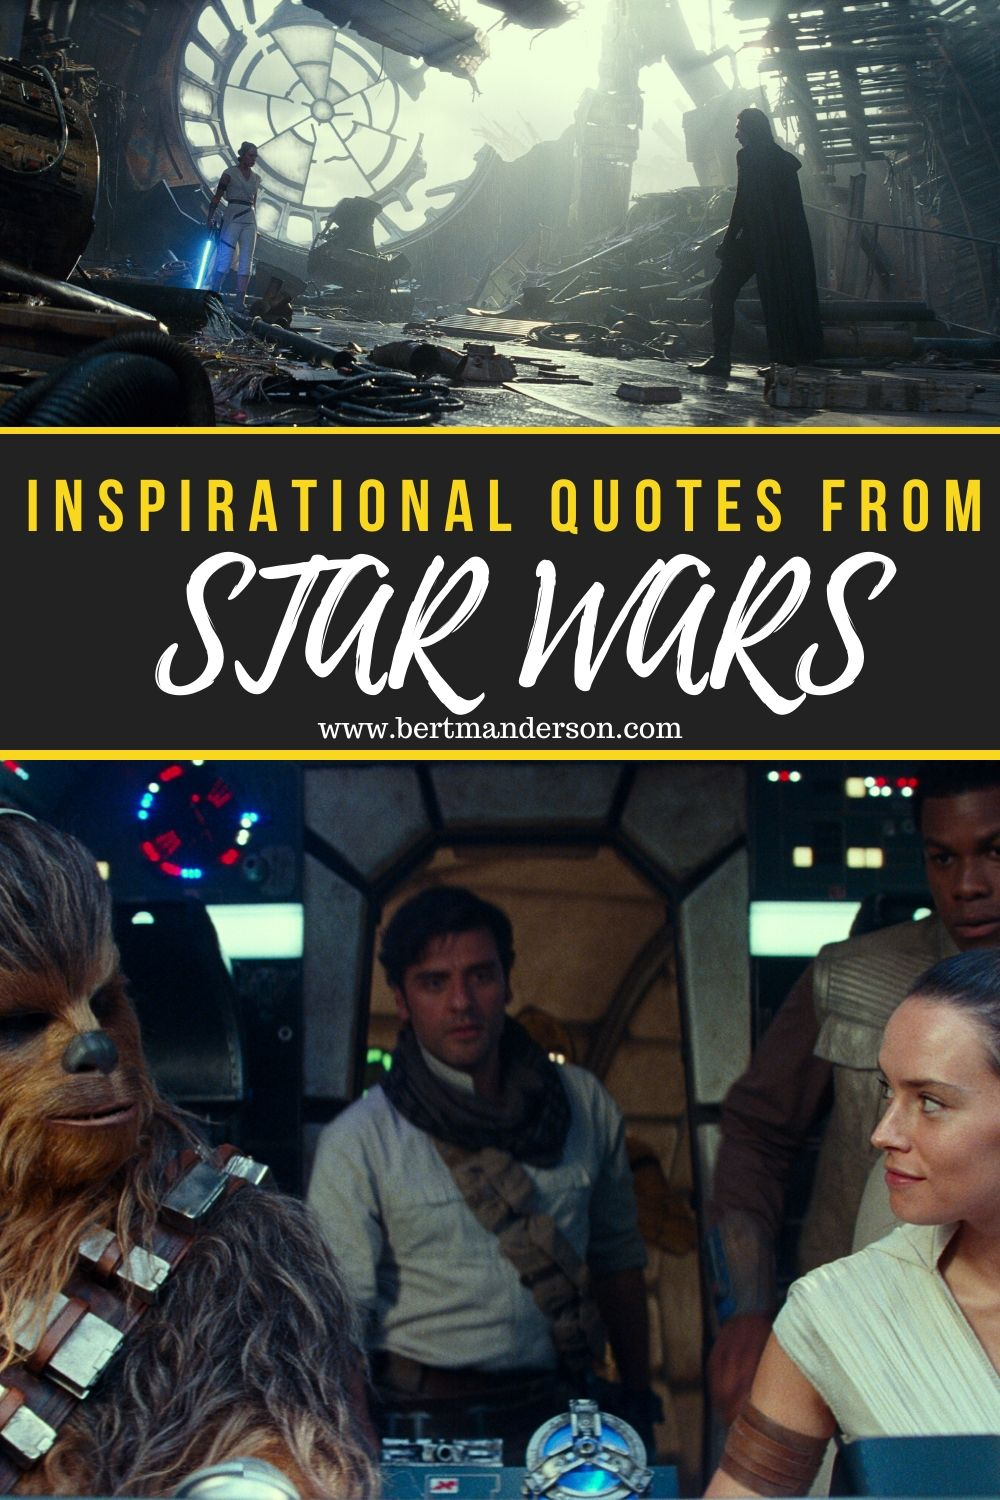 Inspirational quotes from every STAR WARS movie. #starwars #inspirationalqoutes #starwarsquotes #motivationalquotes